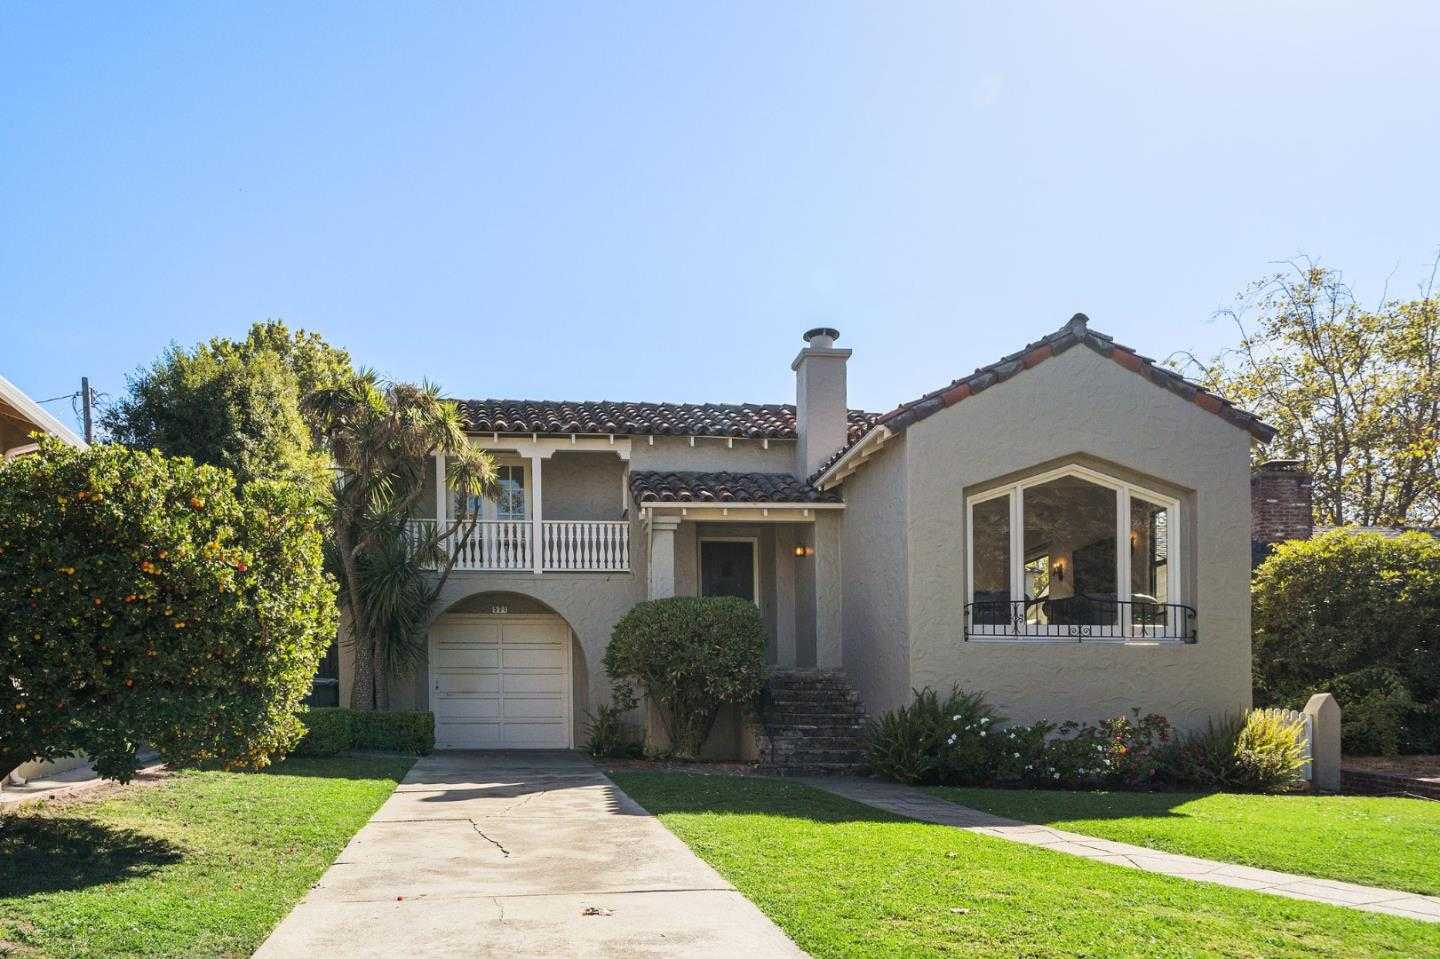 $1,789,000 - 3Br/2Ba -  for Sale in Millbrae